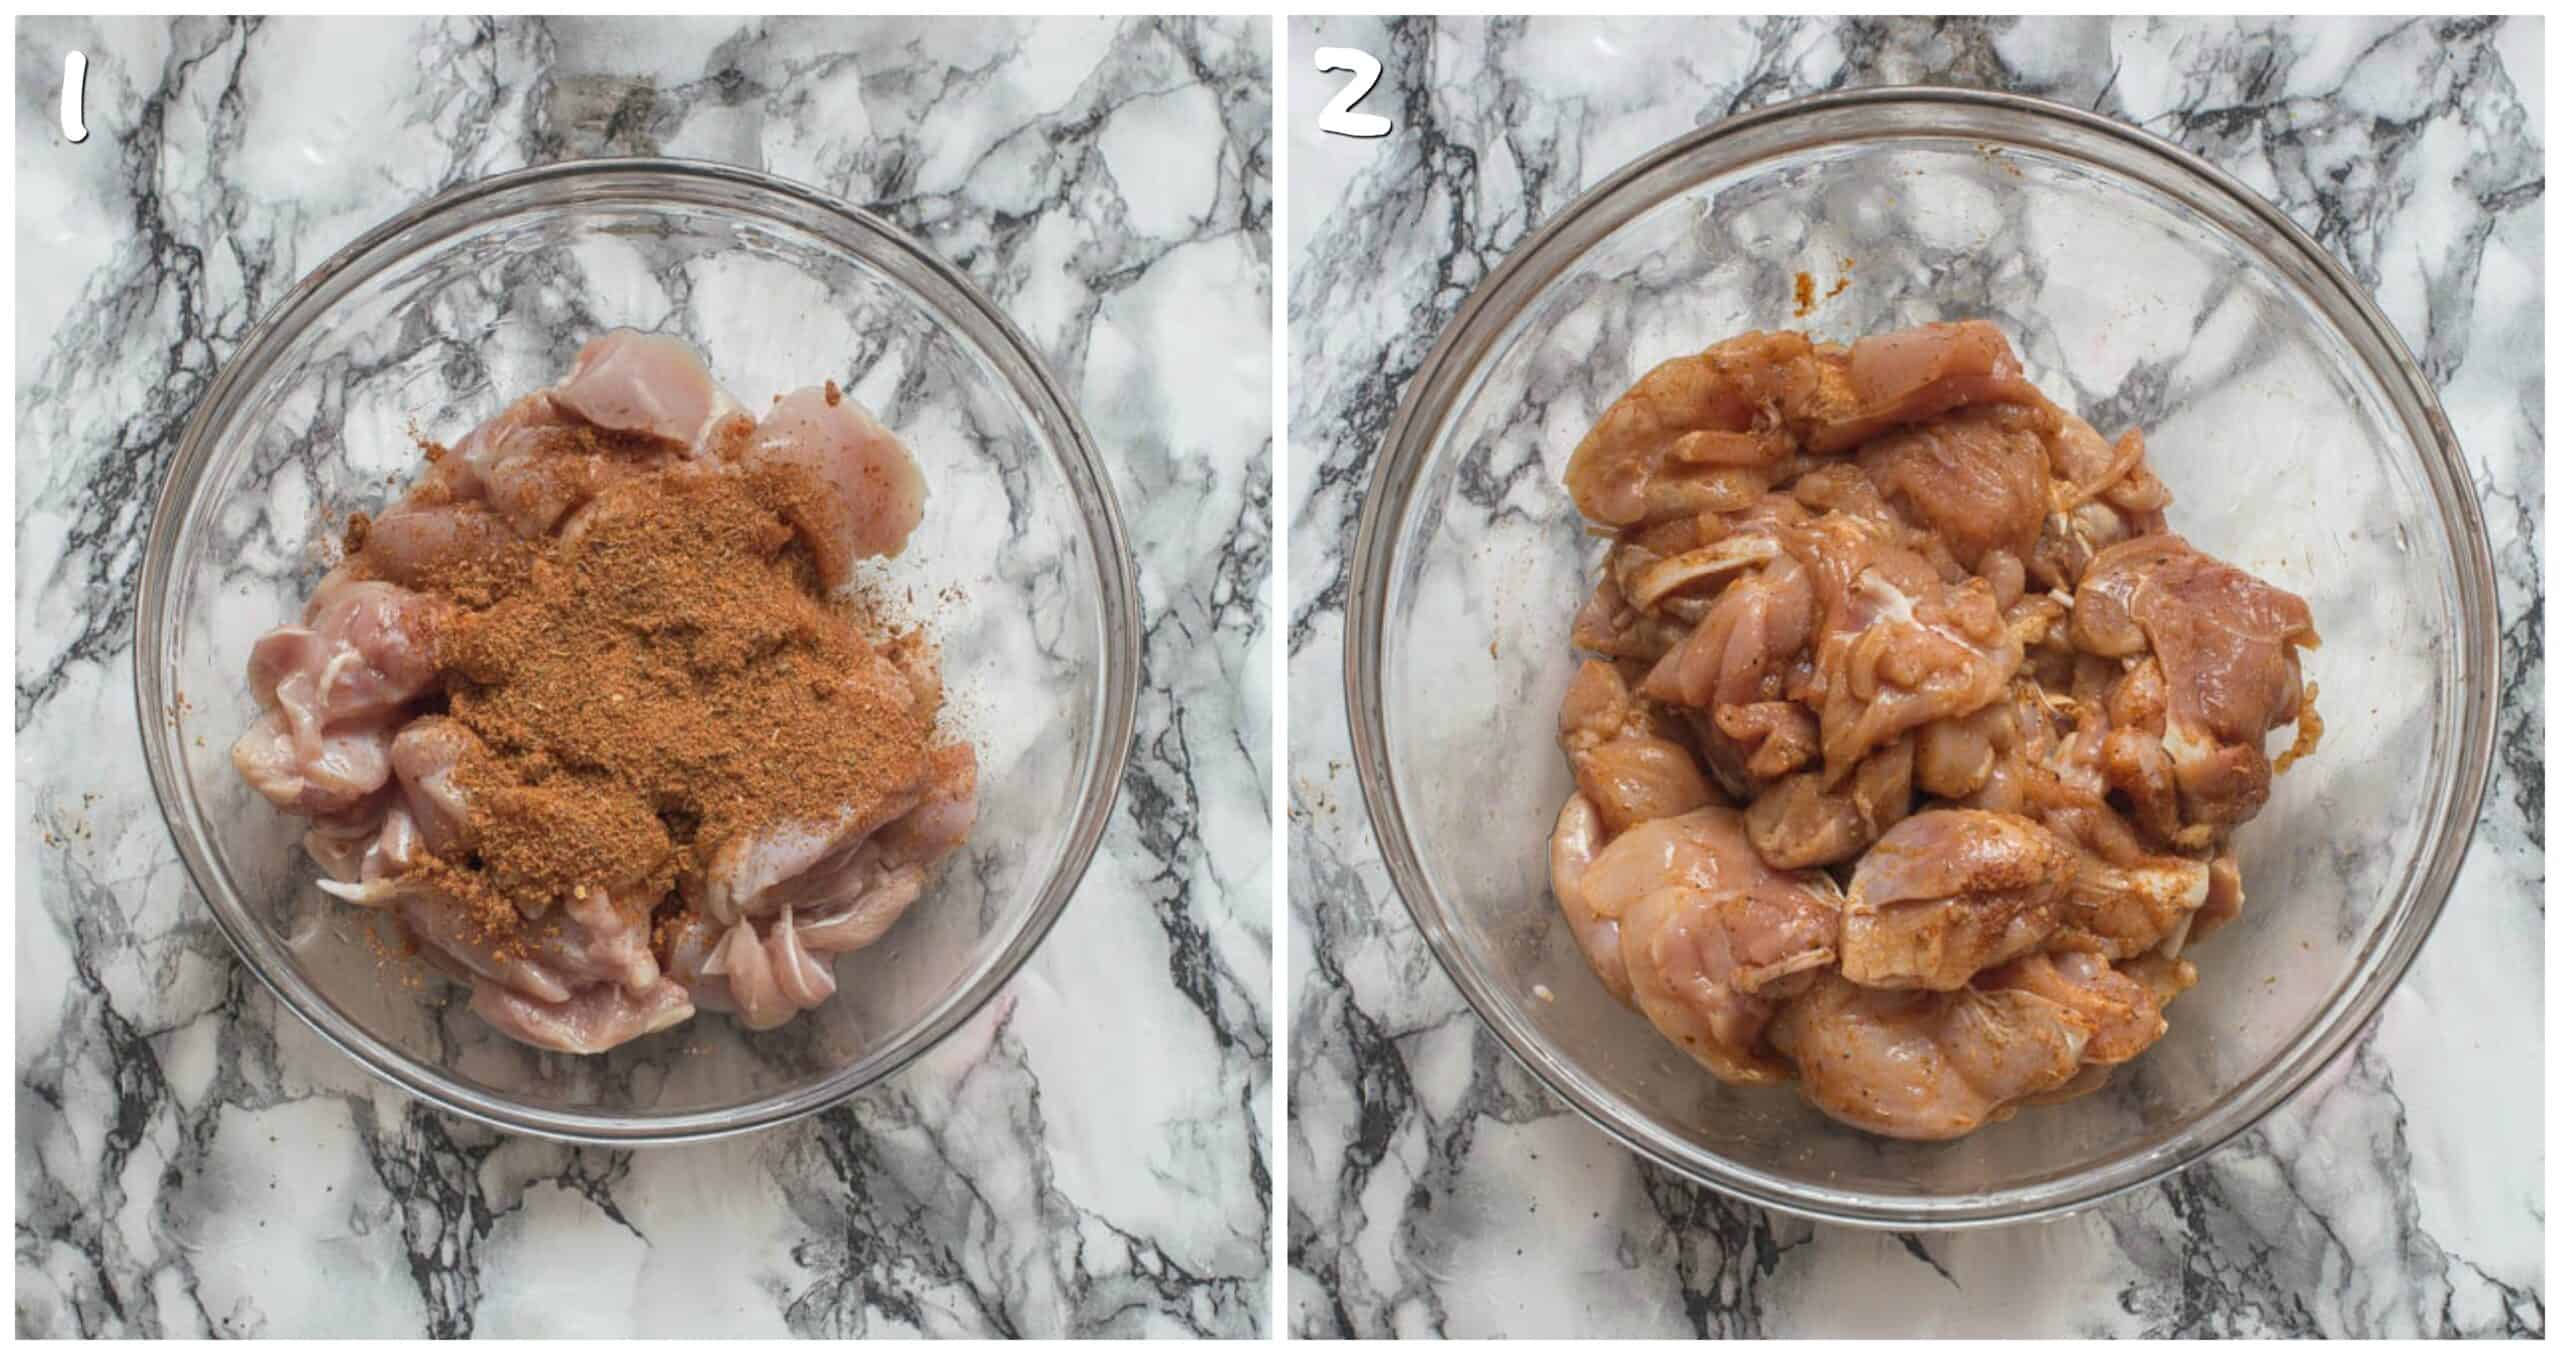 Steps 1-2 marinating the meat